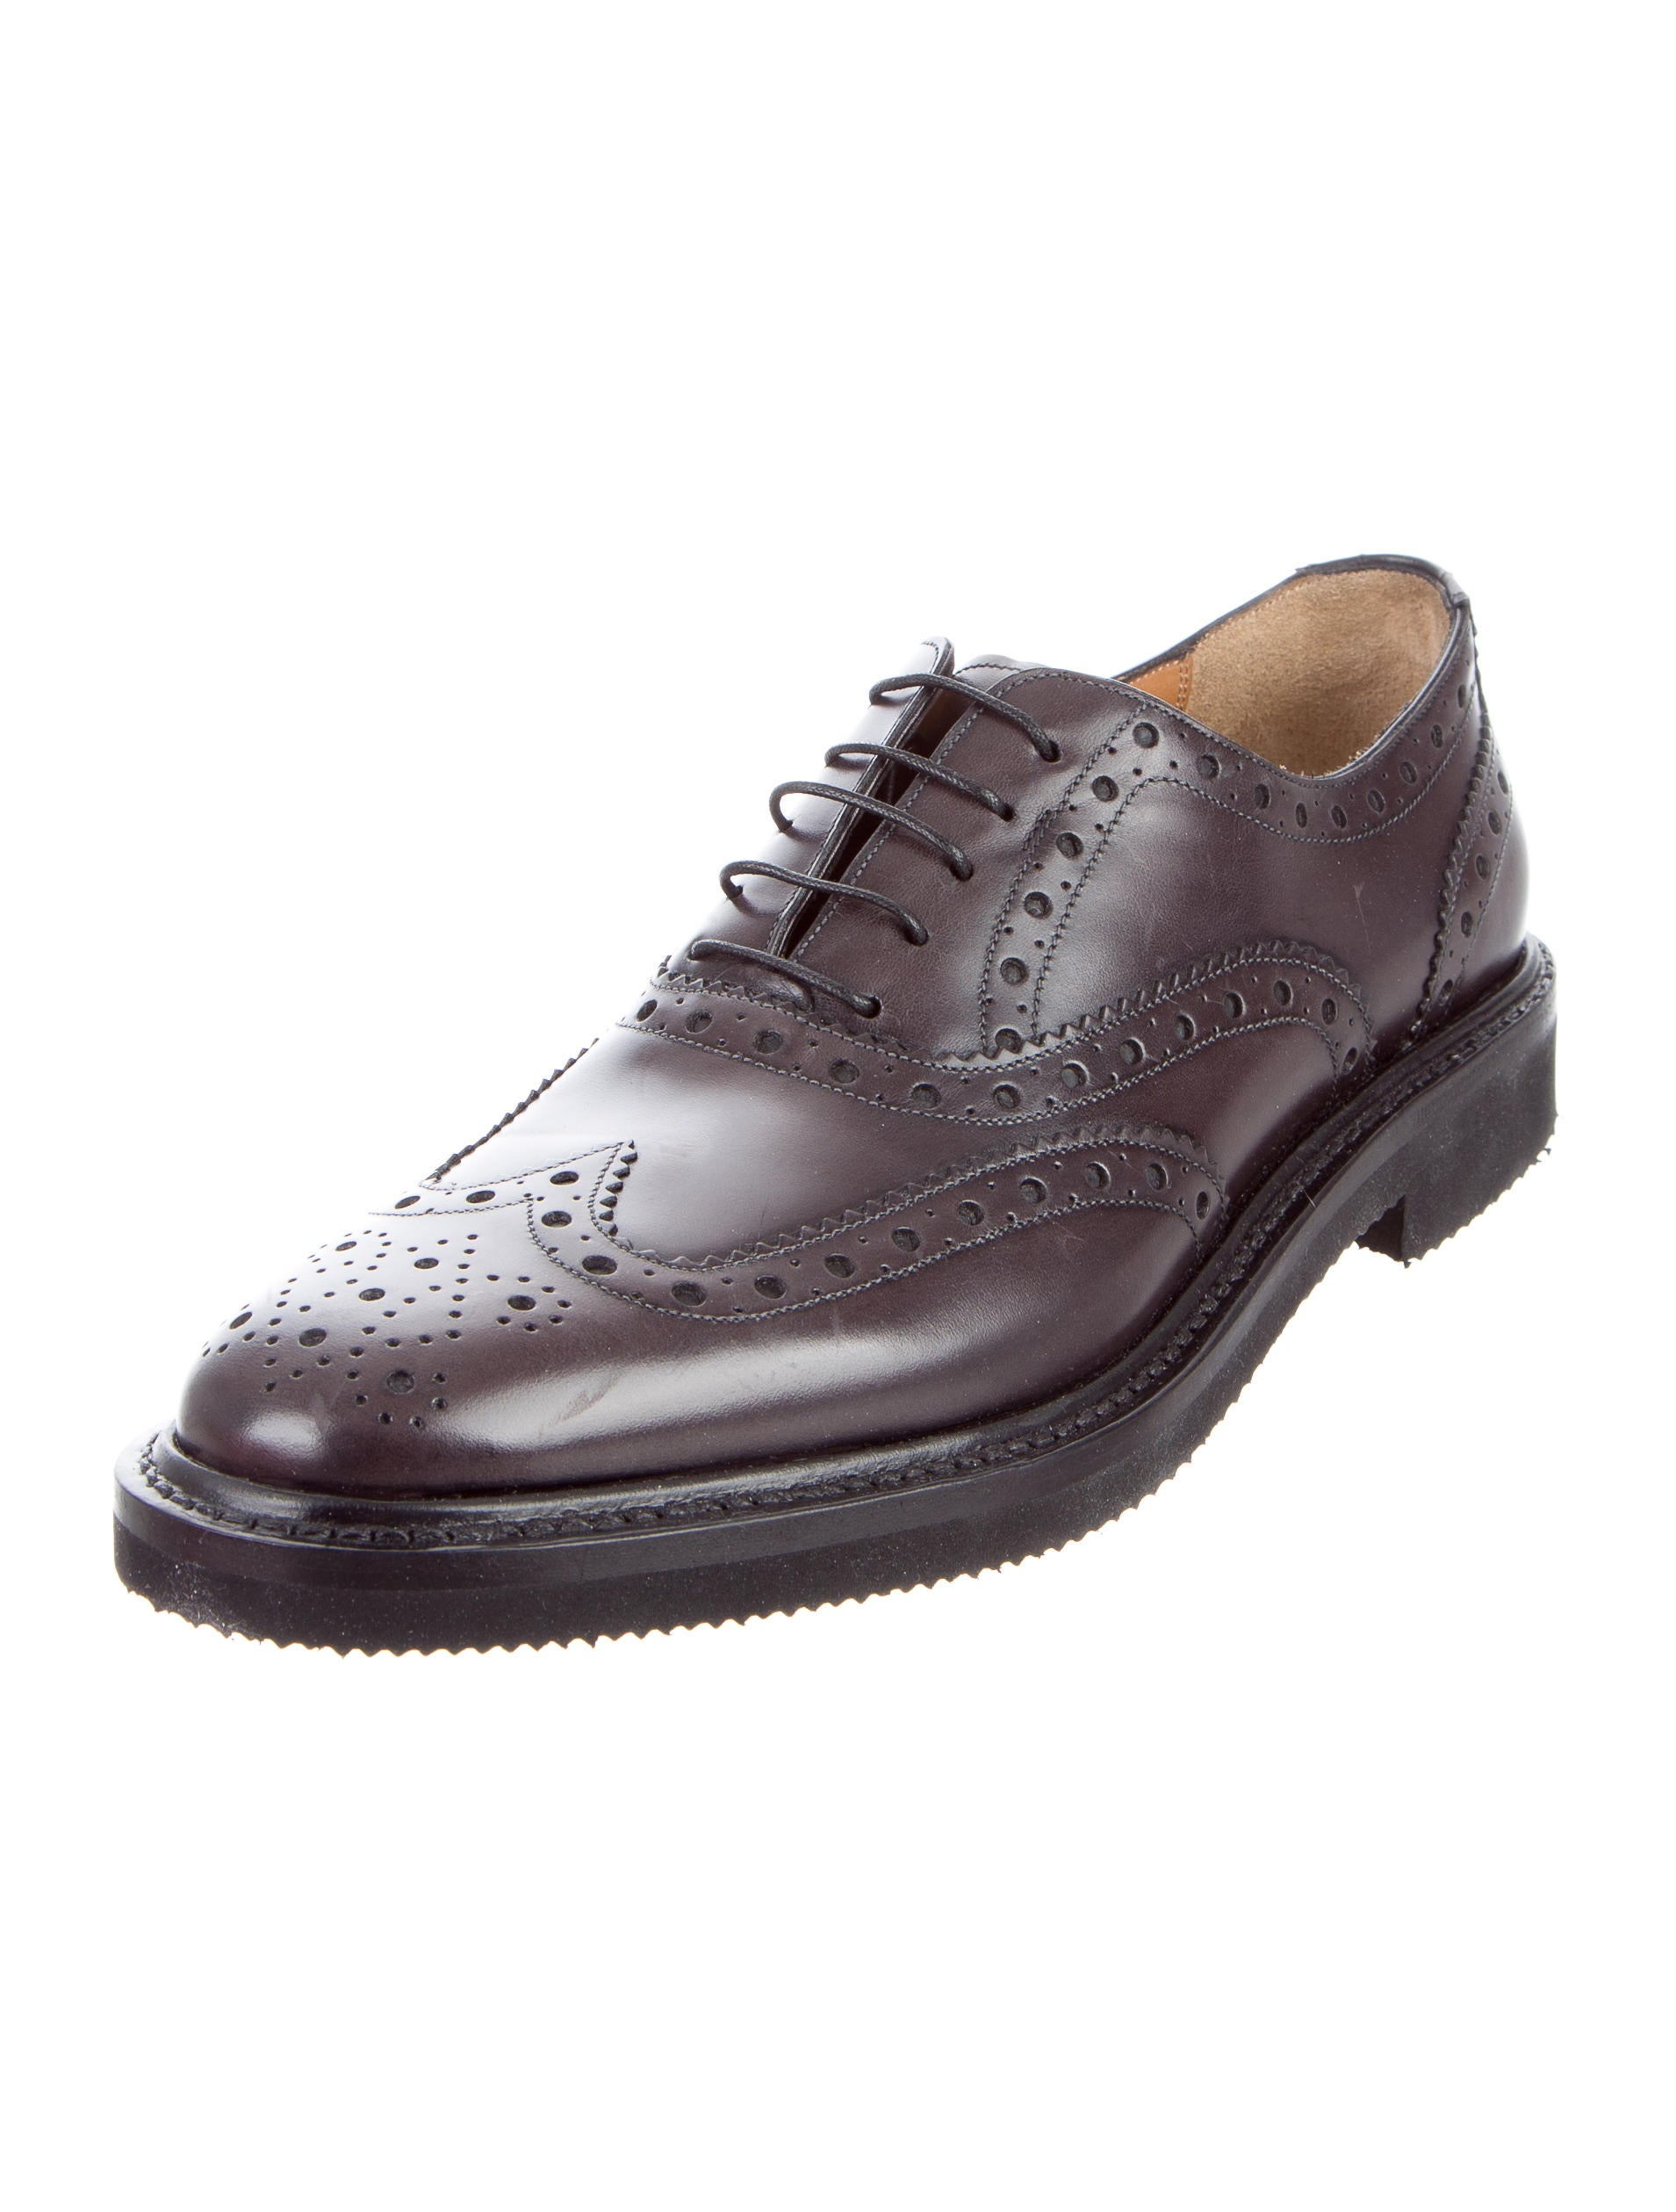 Salvatore Ferragamo Leather Wingtip Brogues